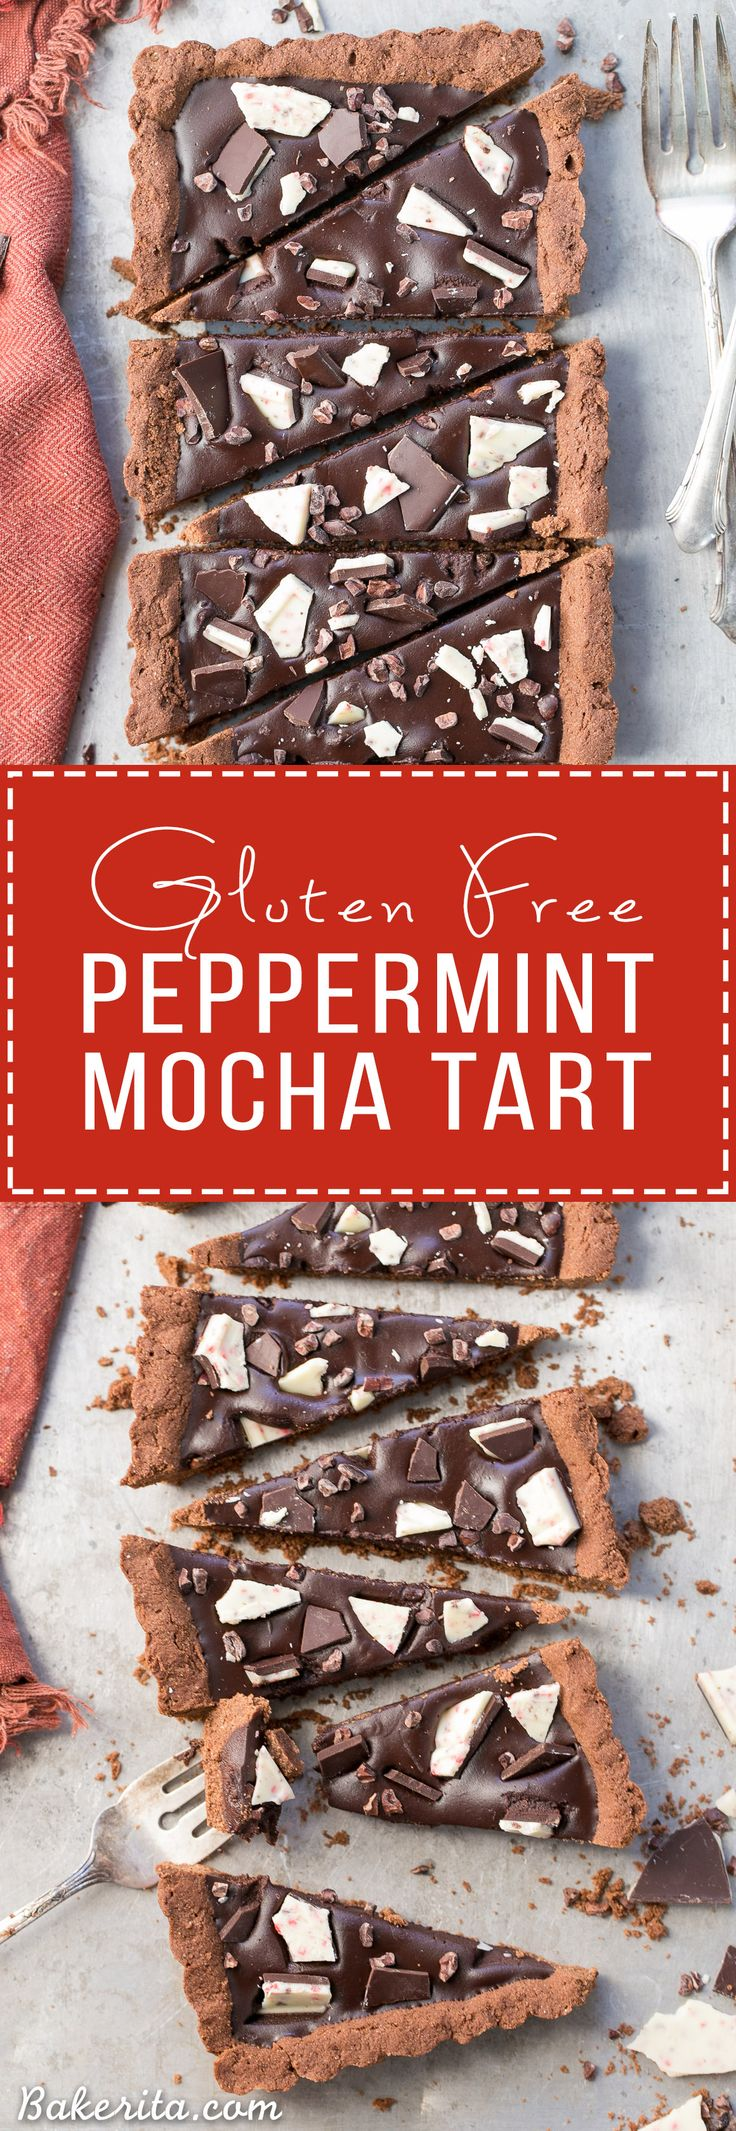 1000+ images about Oh, Do I ♥ Chocolate... on Pinterest | Chocolate ...